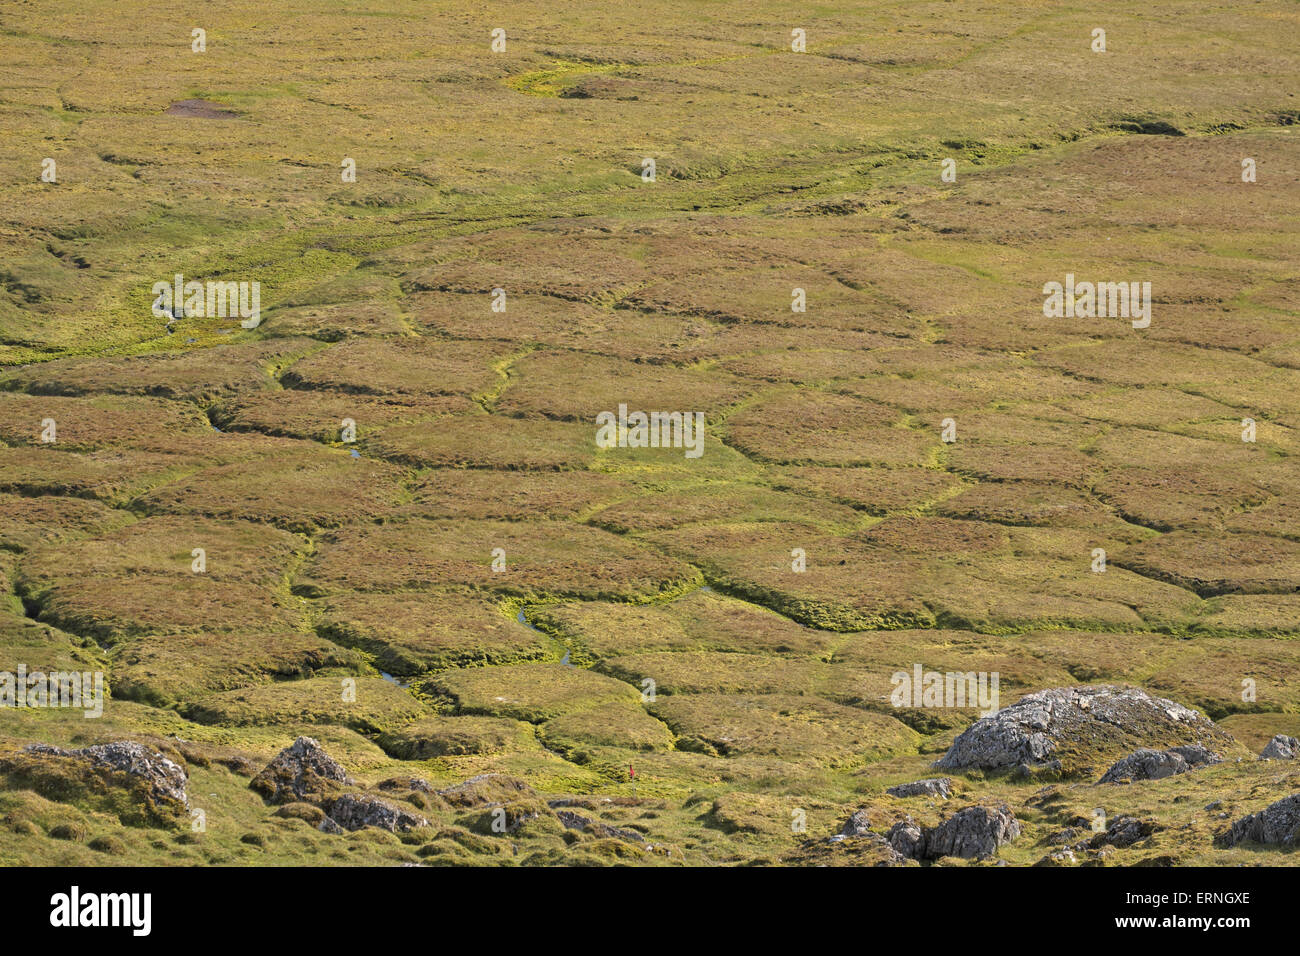 Pattern created in ground due to permafrost, beneath cliff of Alkhonet, above Trygghamna, Isfjorden, Spitzbergen, - Stock Image